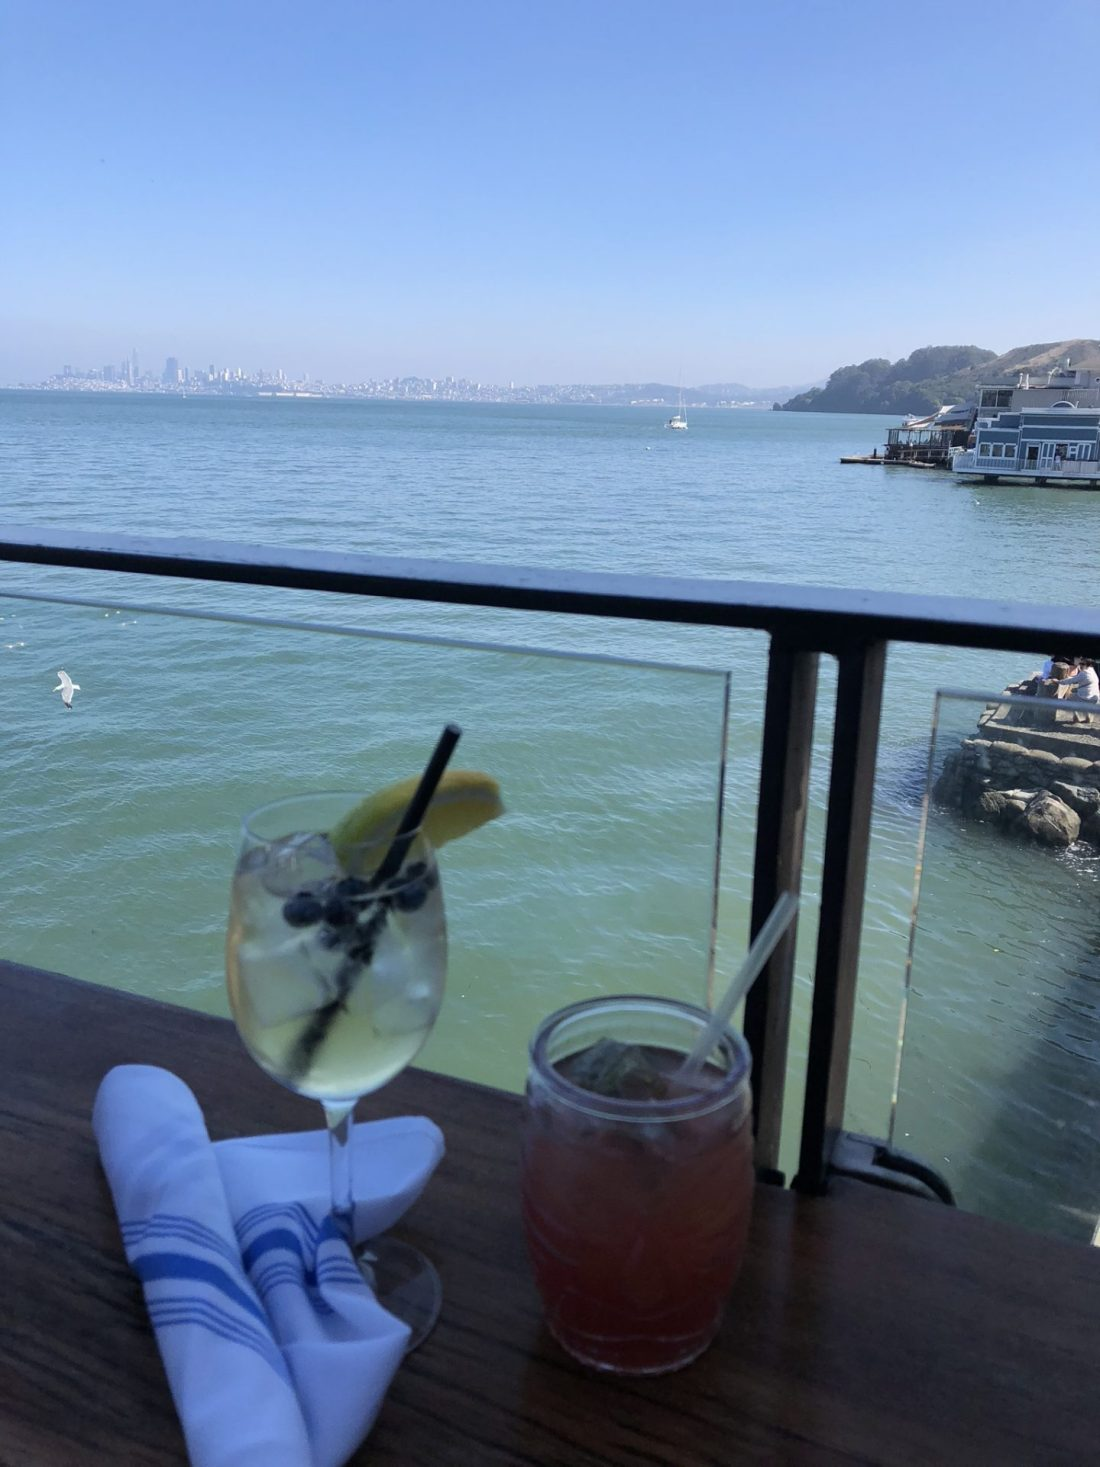 Drinks in Sausalito, California